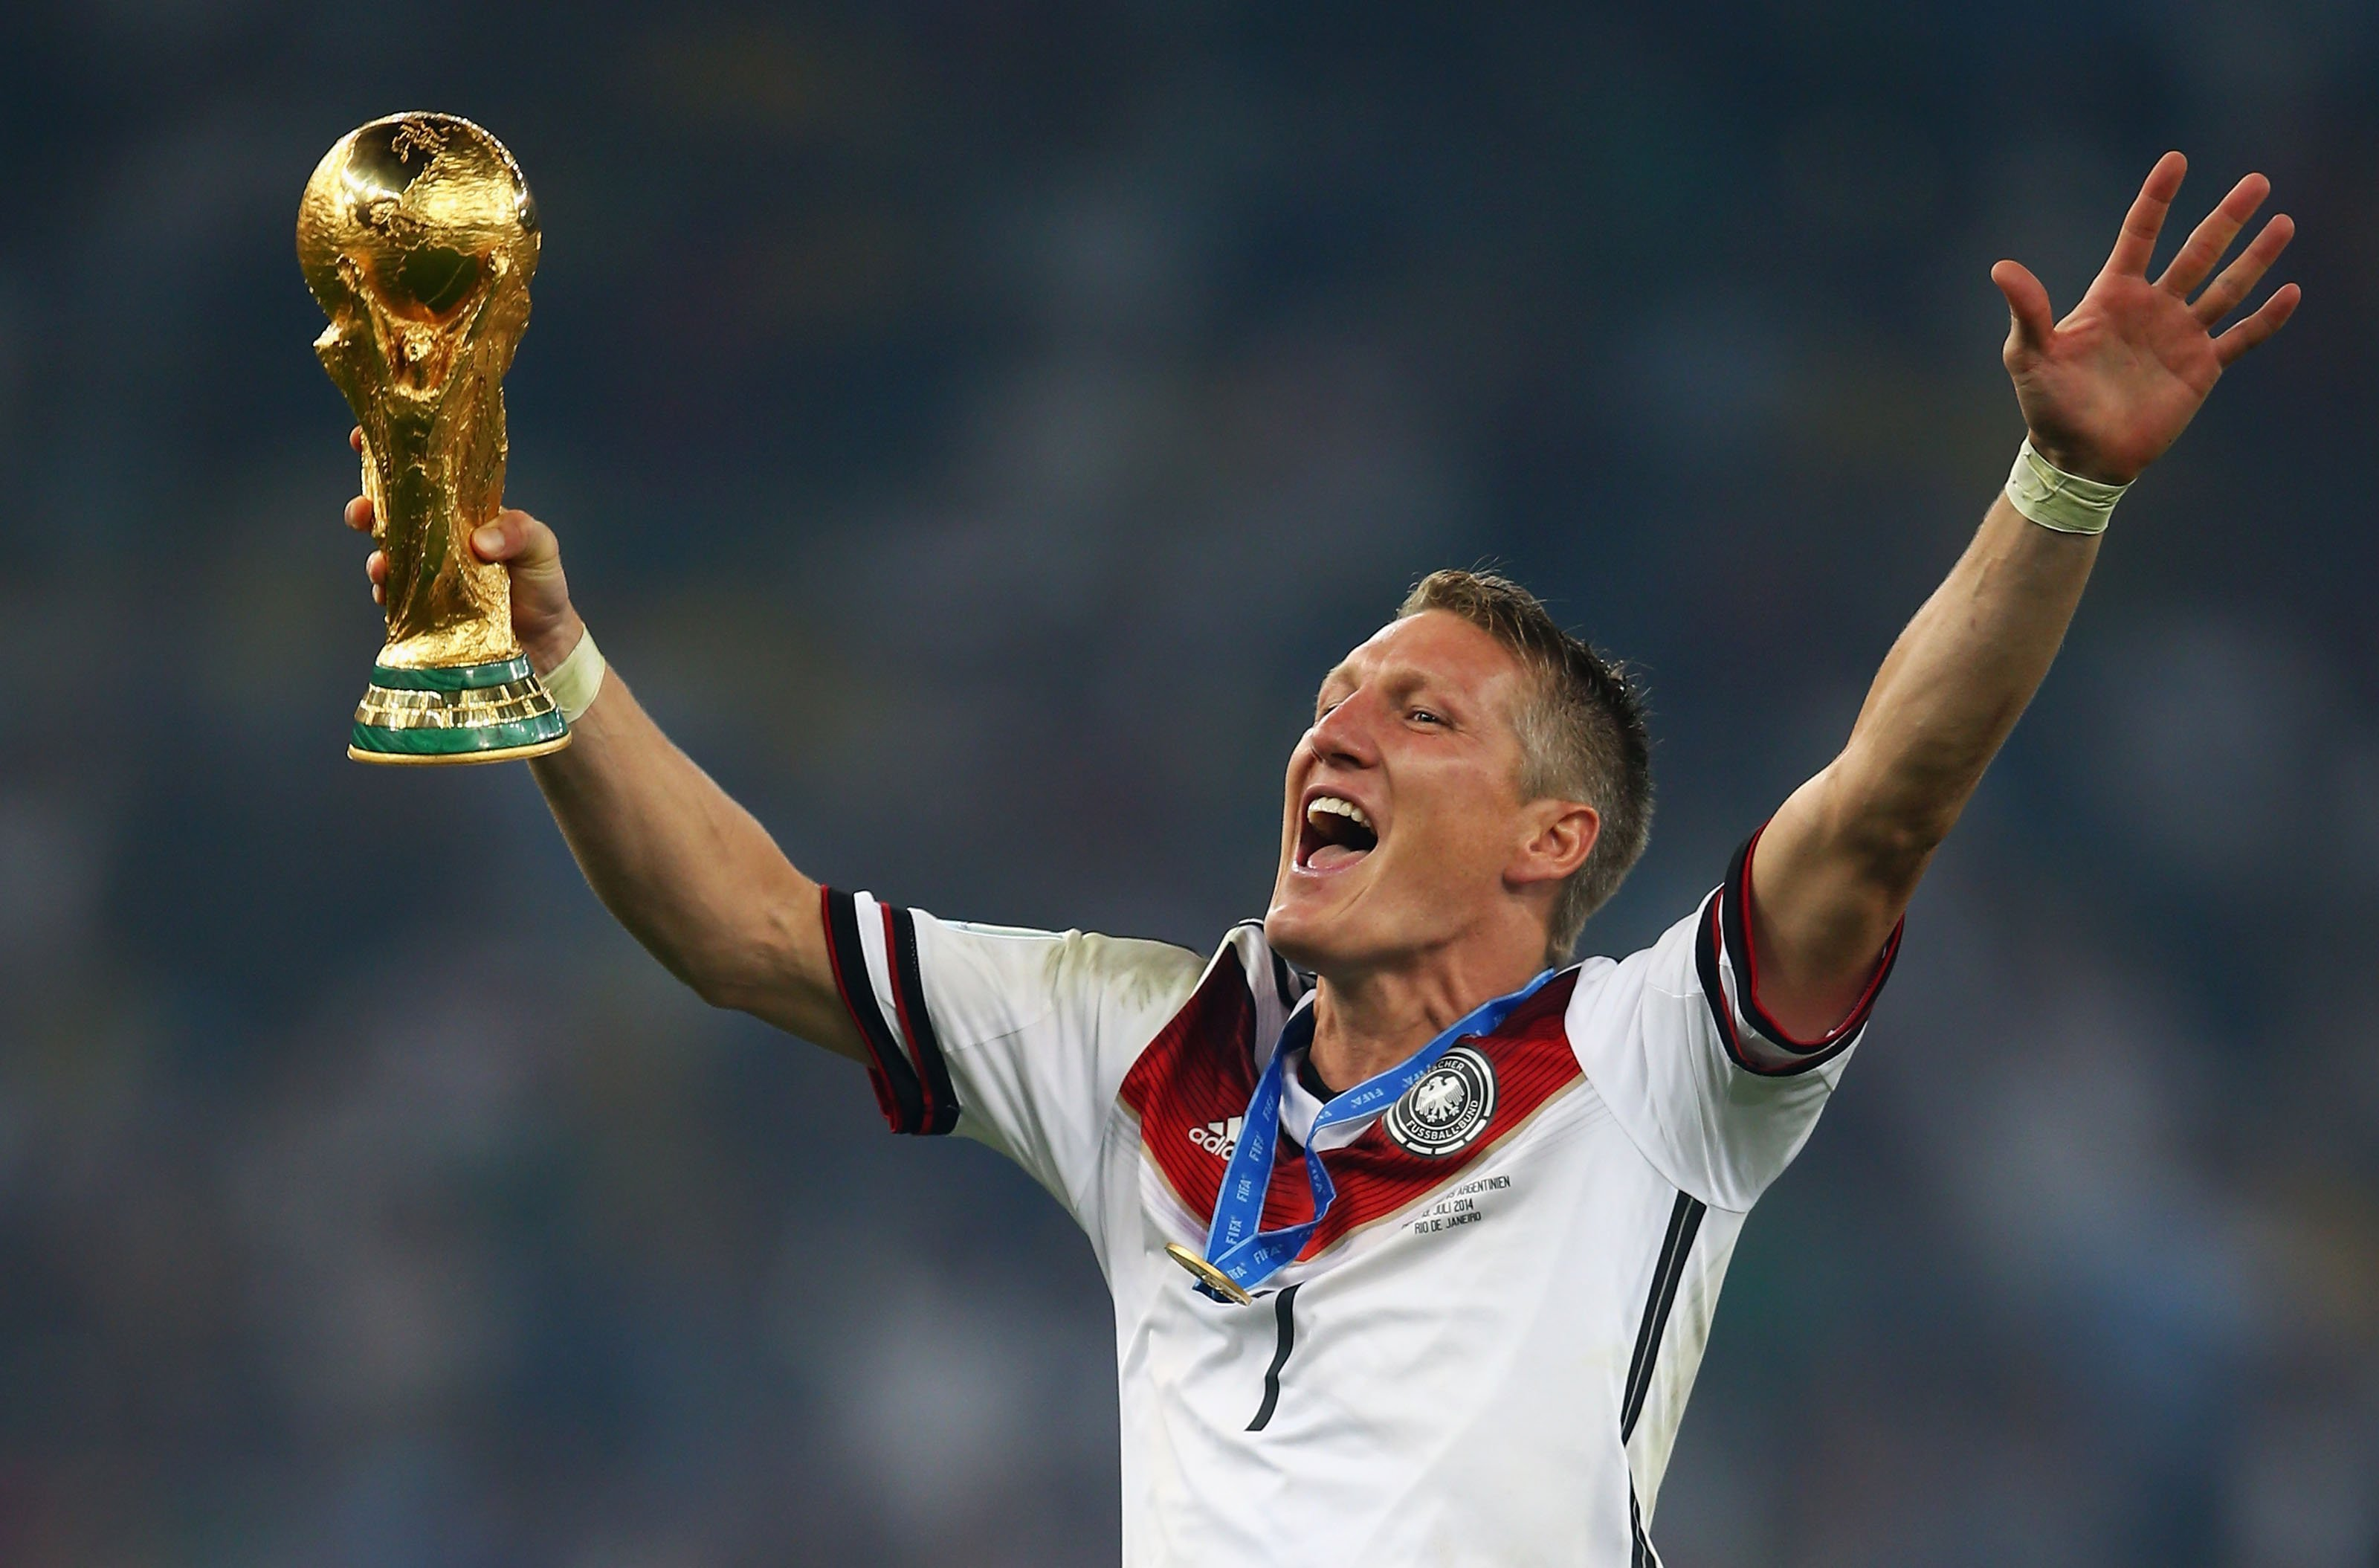 Bastian Schweinsteiger participated in every major international tournament from Euro 2004 to the 2016 World Cup.